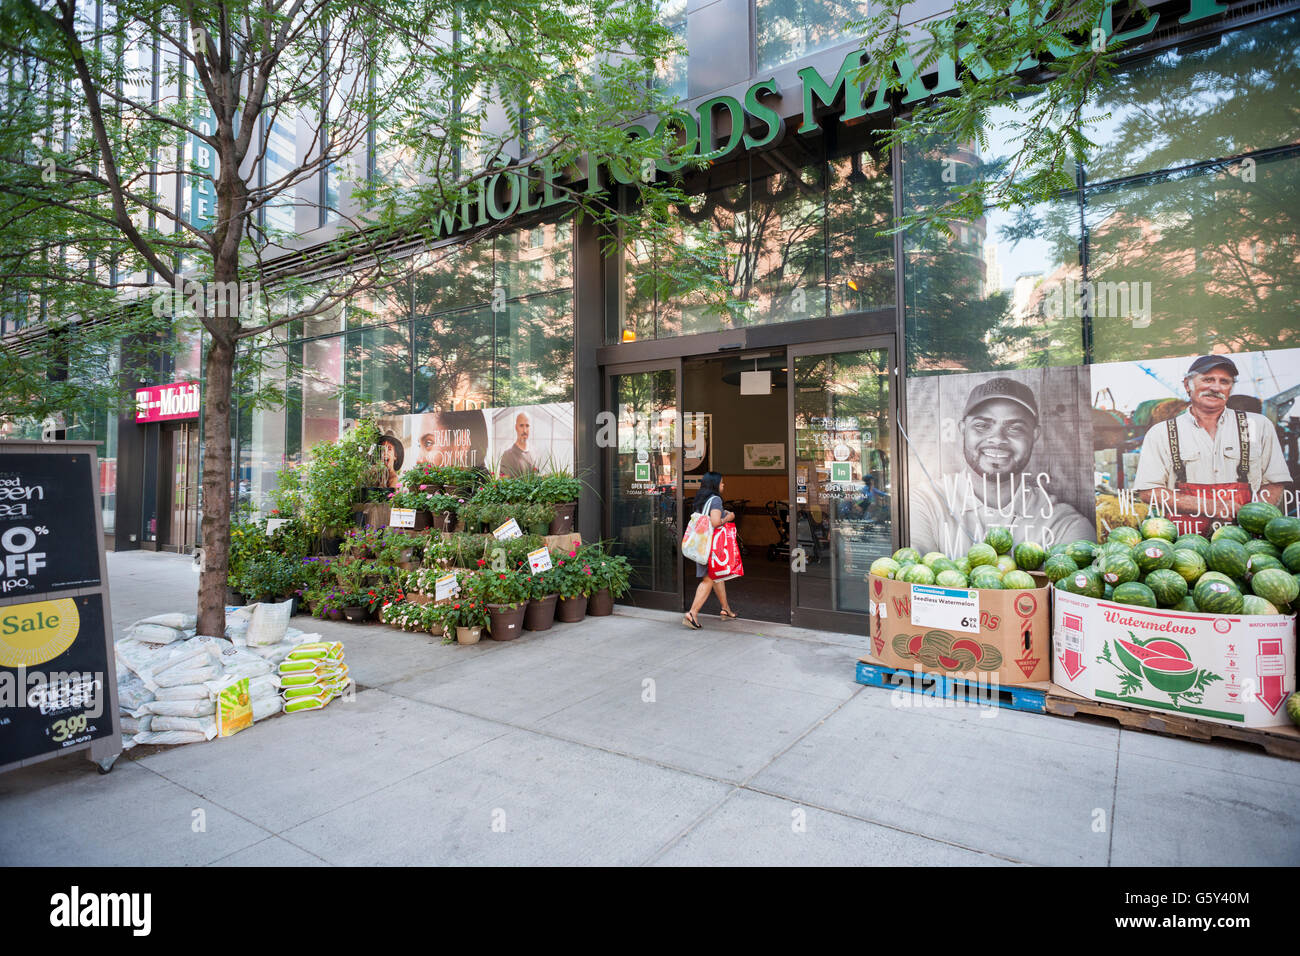 Best Whole Foods Market In Nyc